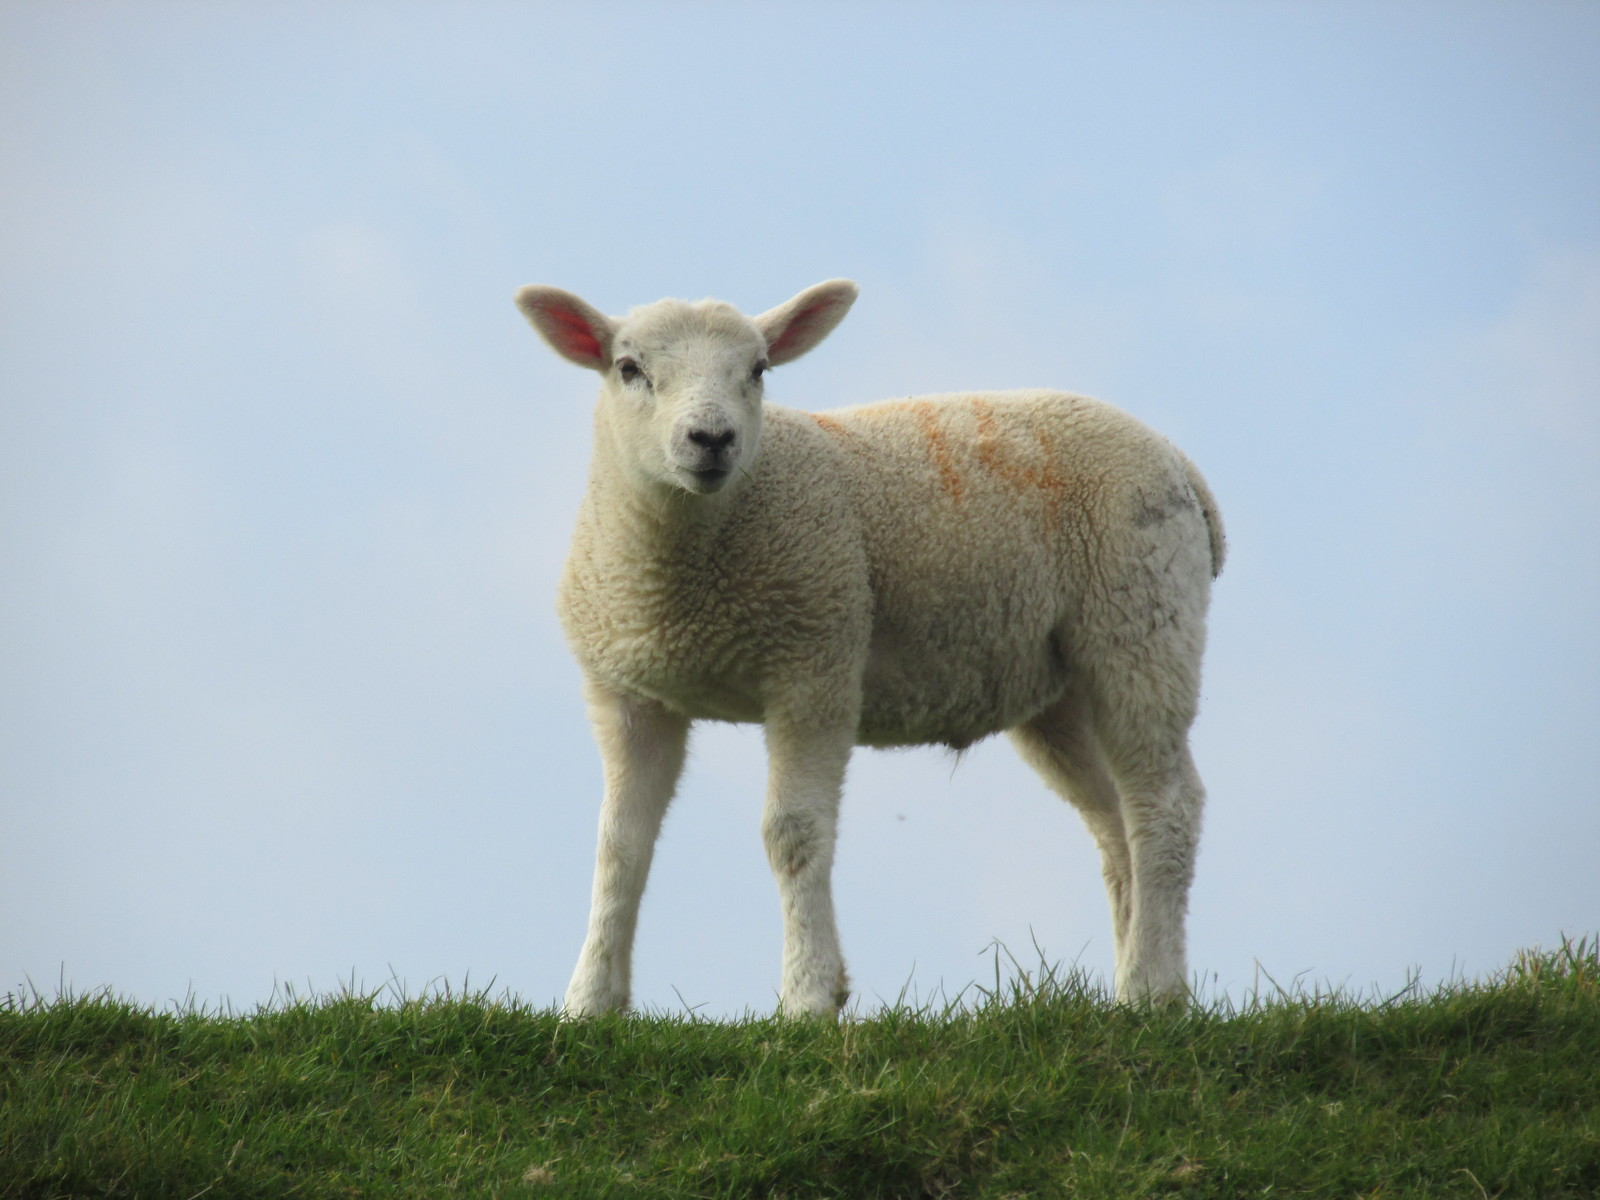 April 6, 2015: Glynde to Seaford Cuckmere Haven lamb